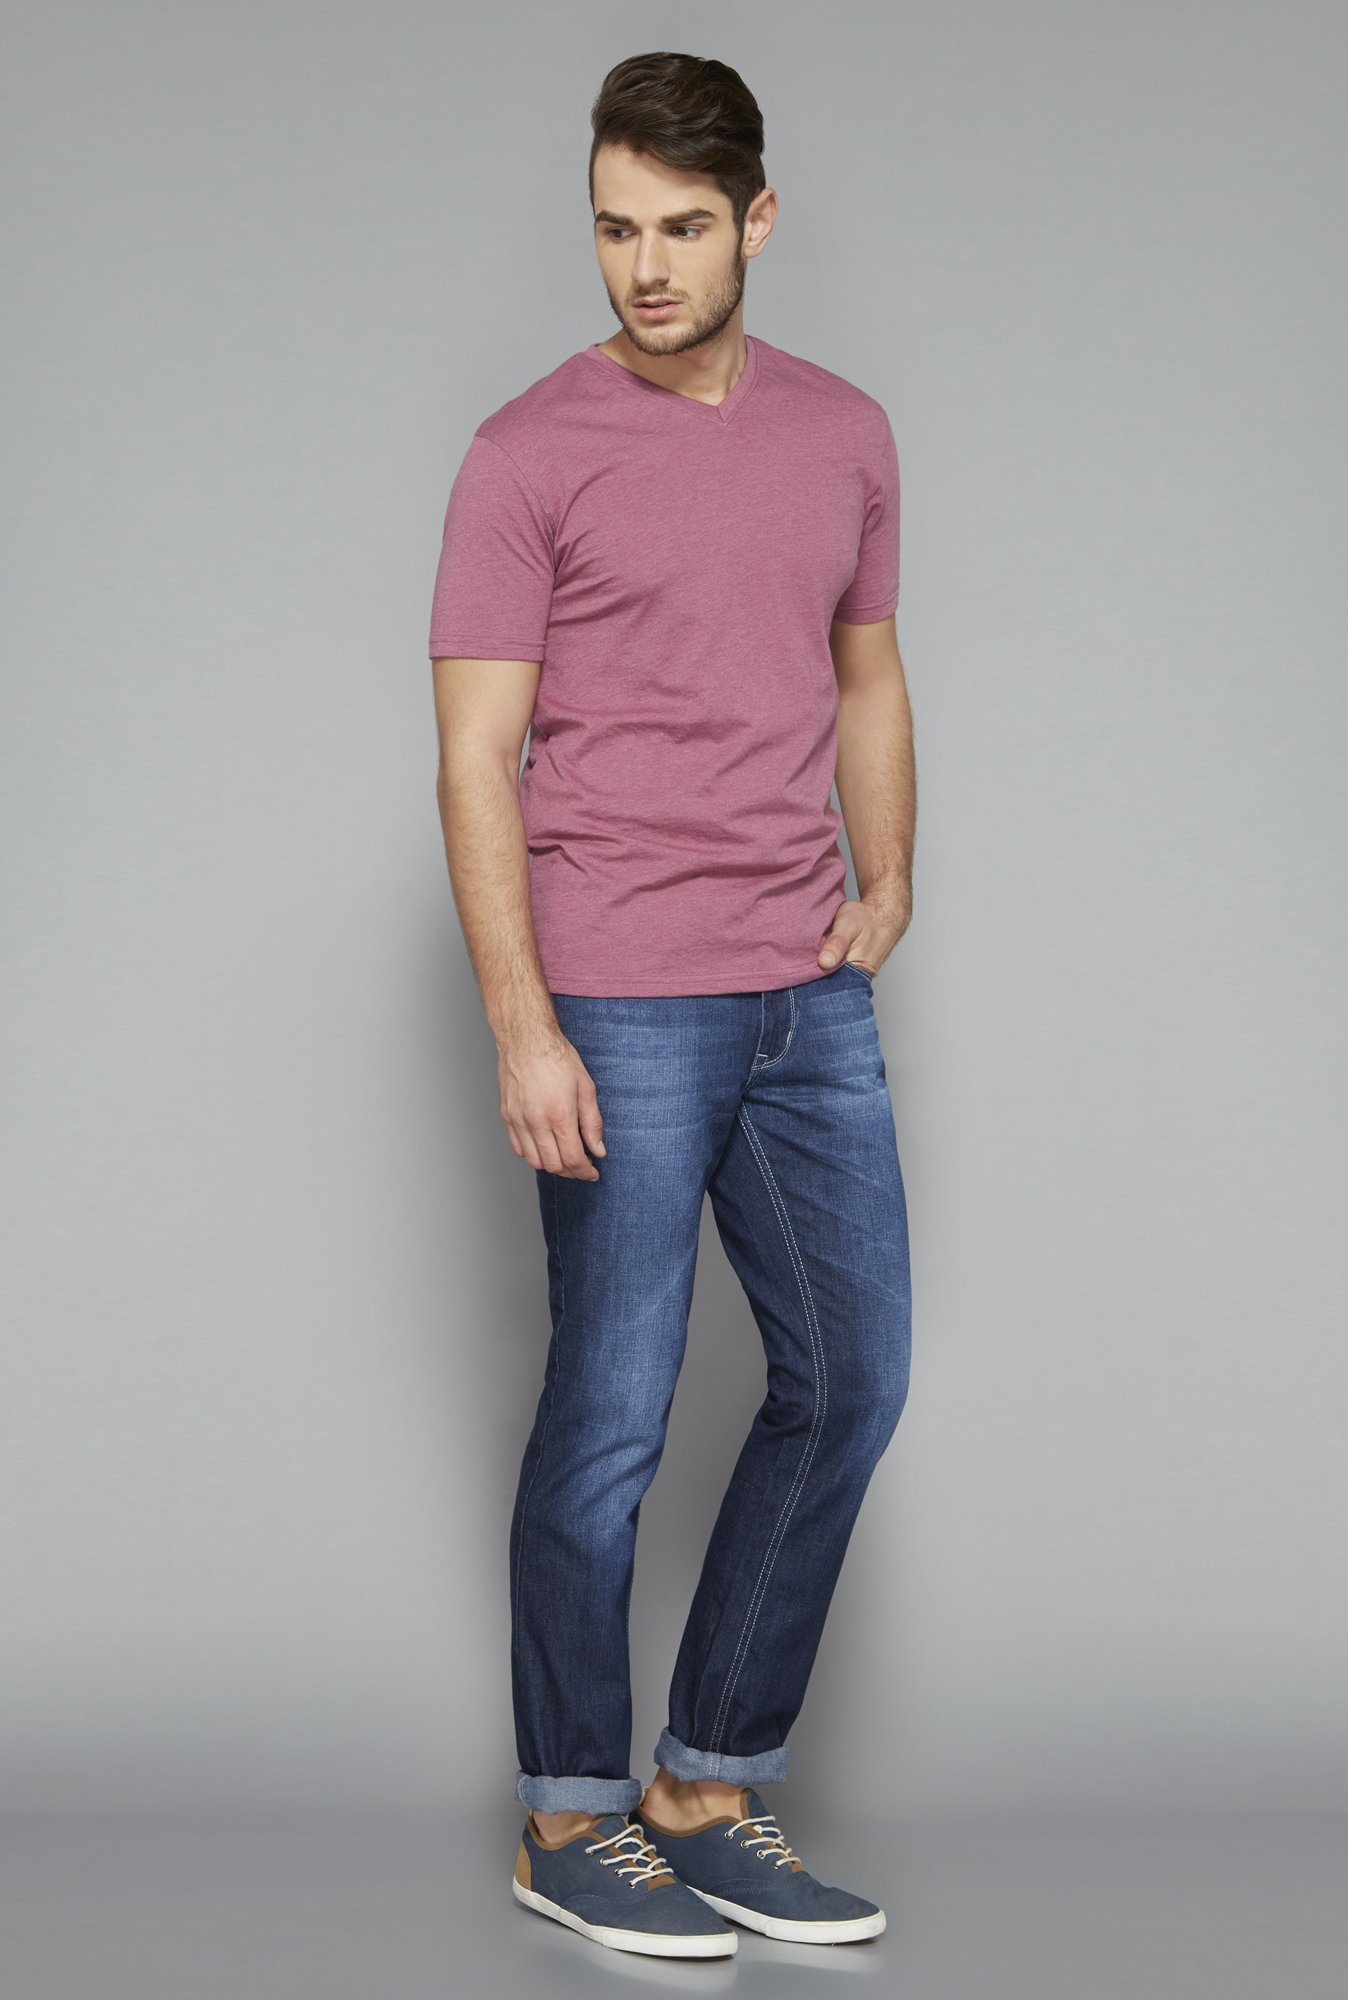 Westsport Purple V Neck T Shirt